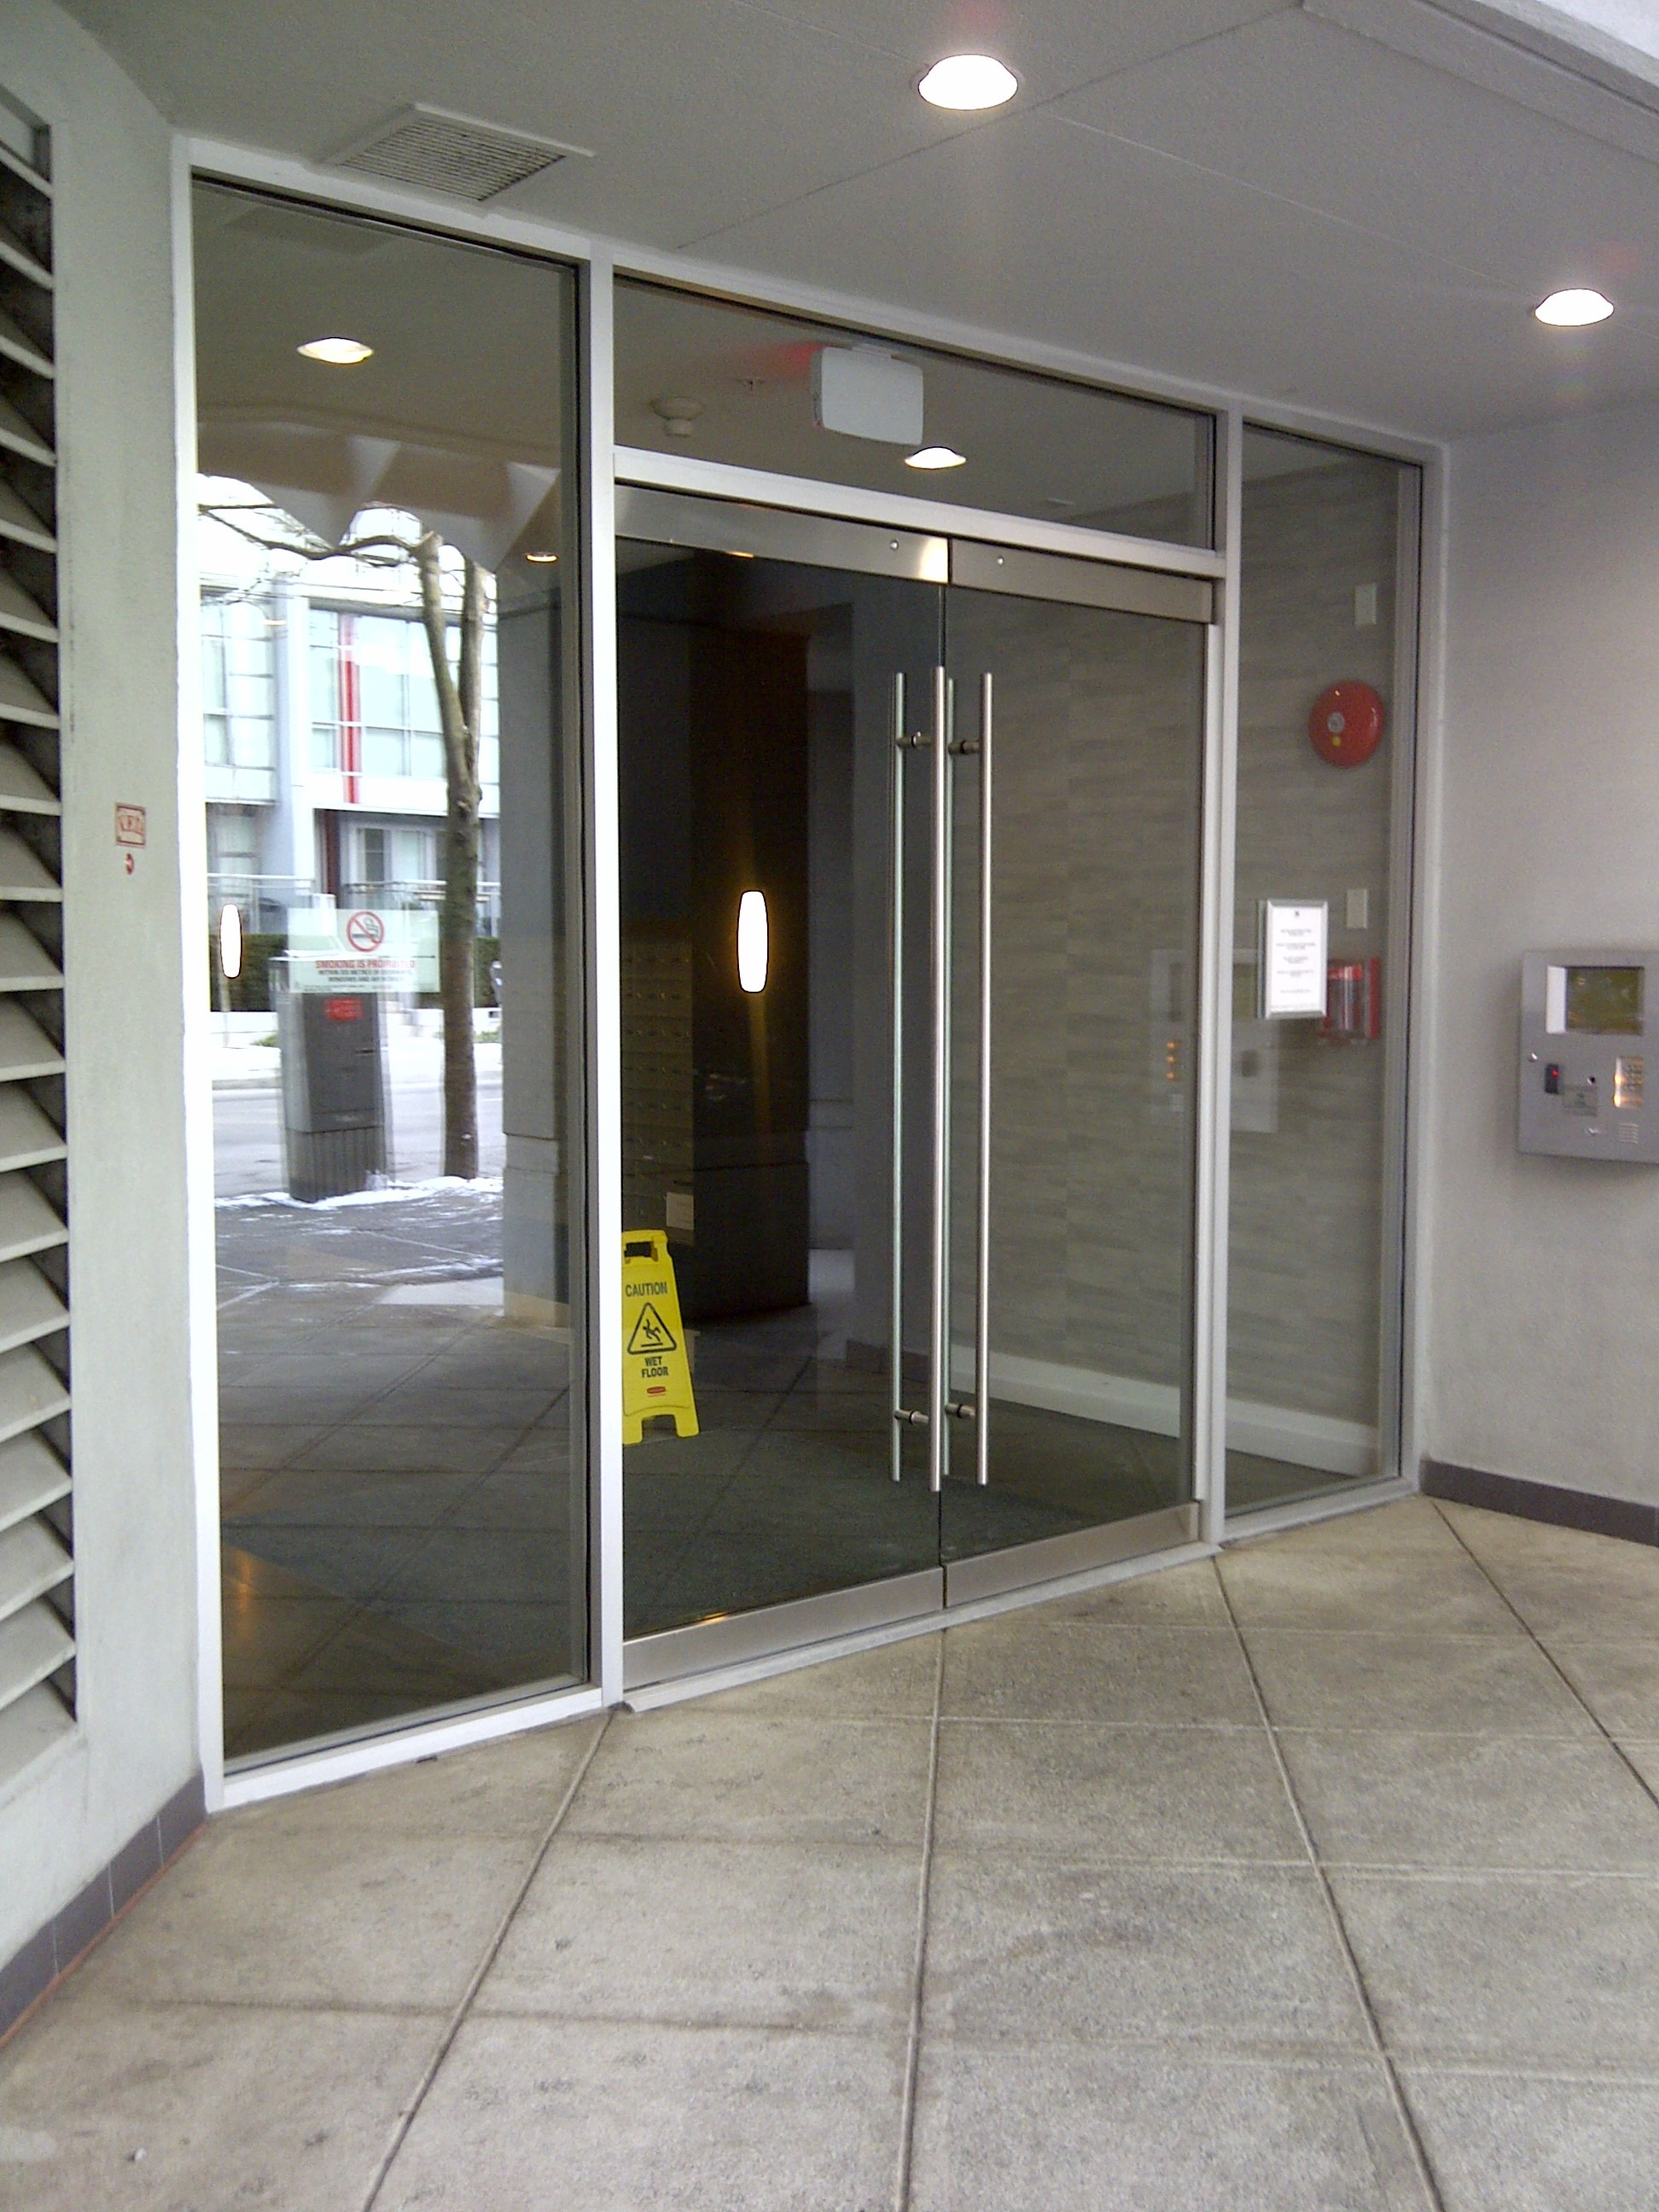 2592 #5A4E45 Doors Frosted Glass Doors Frameless Glass Doors Safety Glass Doors  picture/photo Commercial Building Entry Doors 45391944